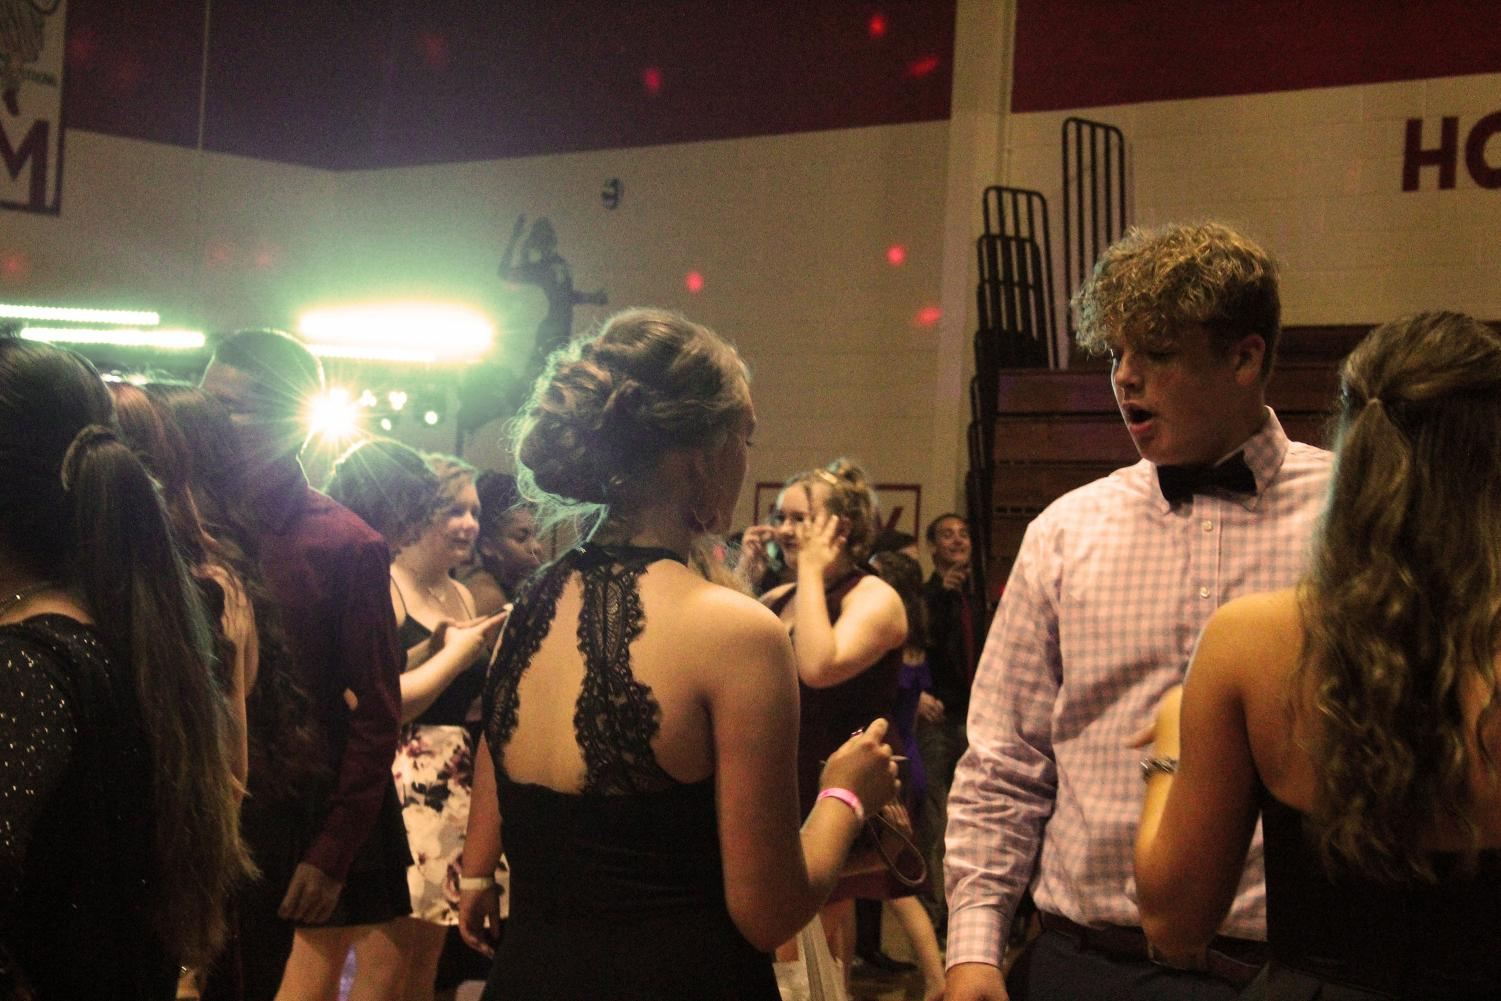 Sophomore Jordan Bassler talks with friends at the homecoming dance last Saturday.  The security system installed last summer left the dance lit brighter than usual.